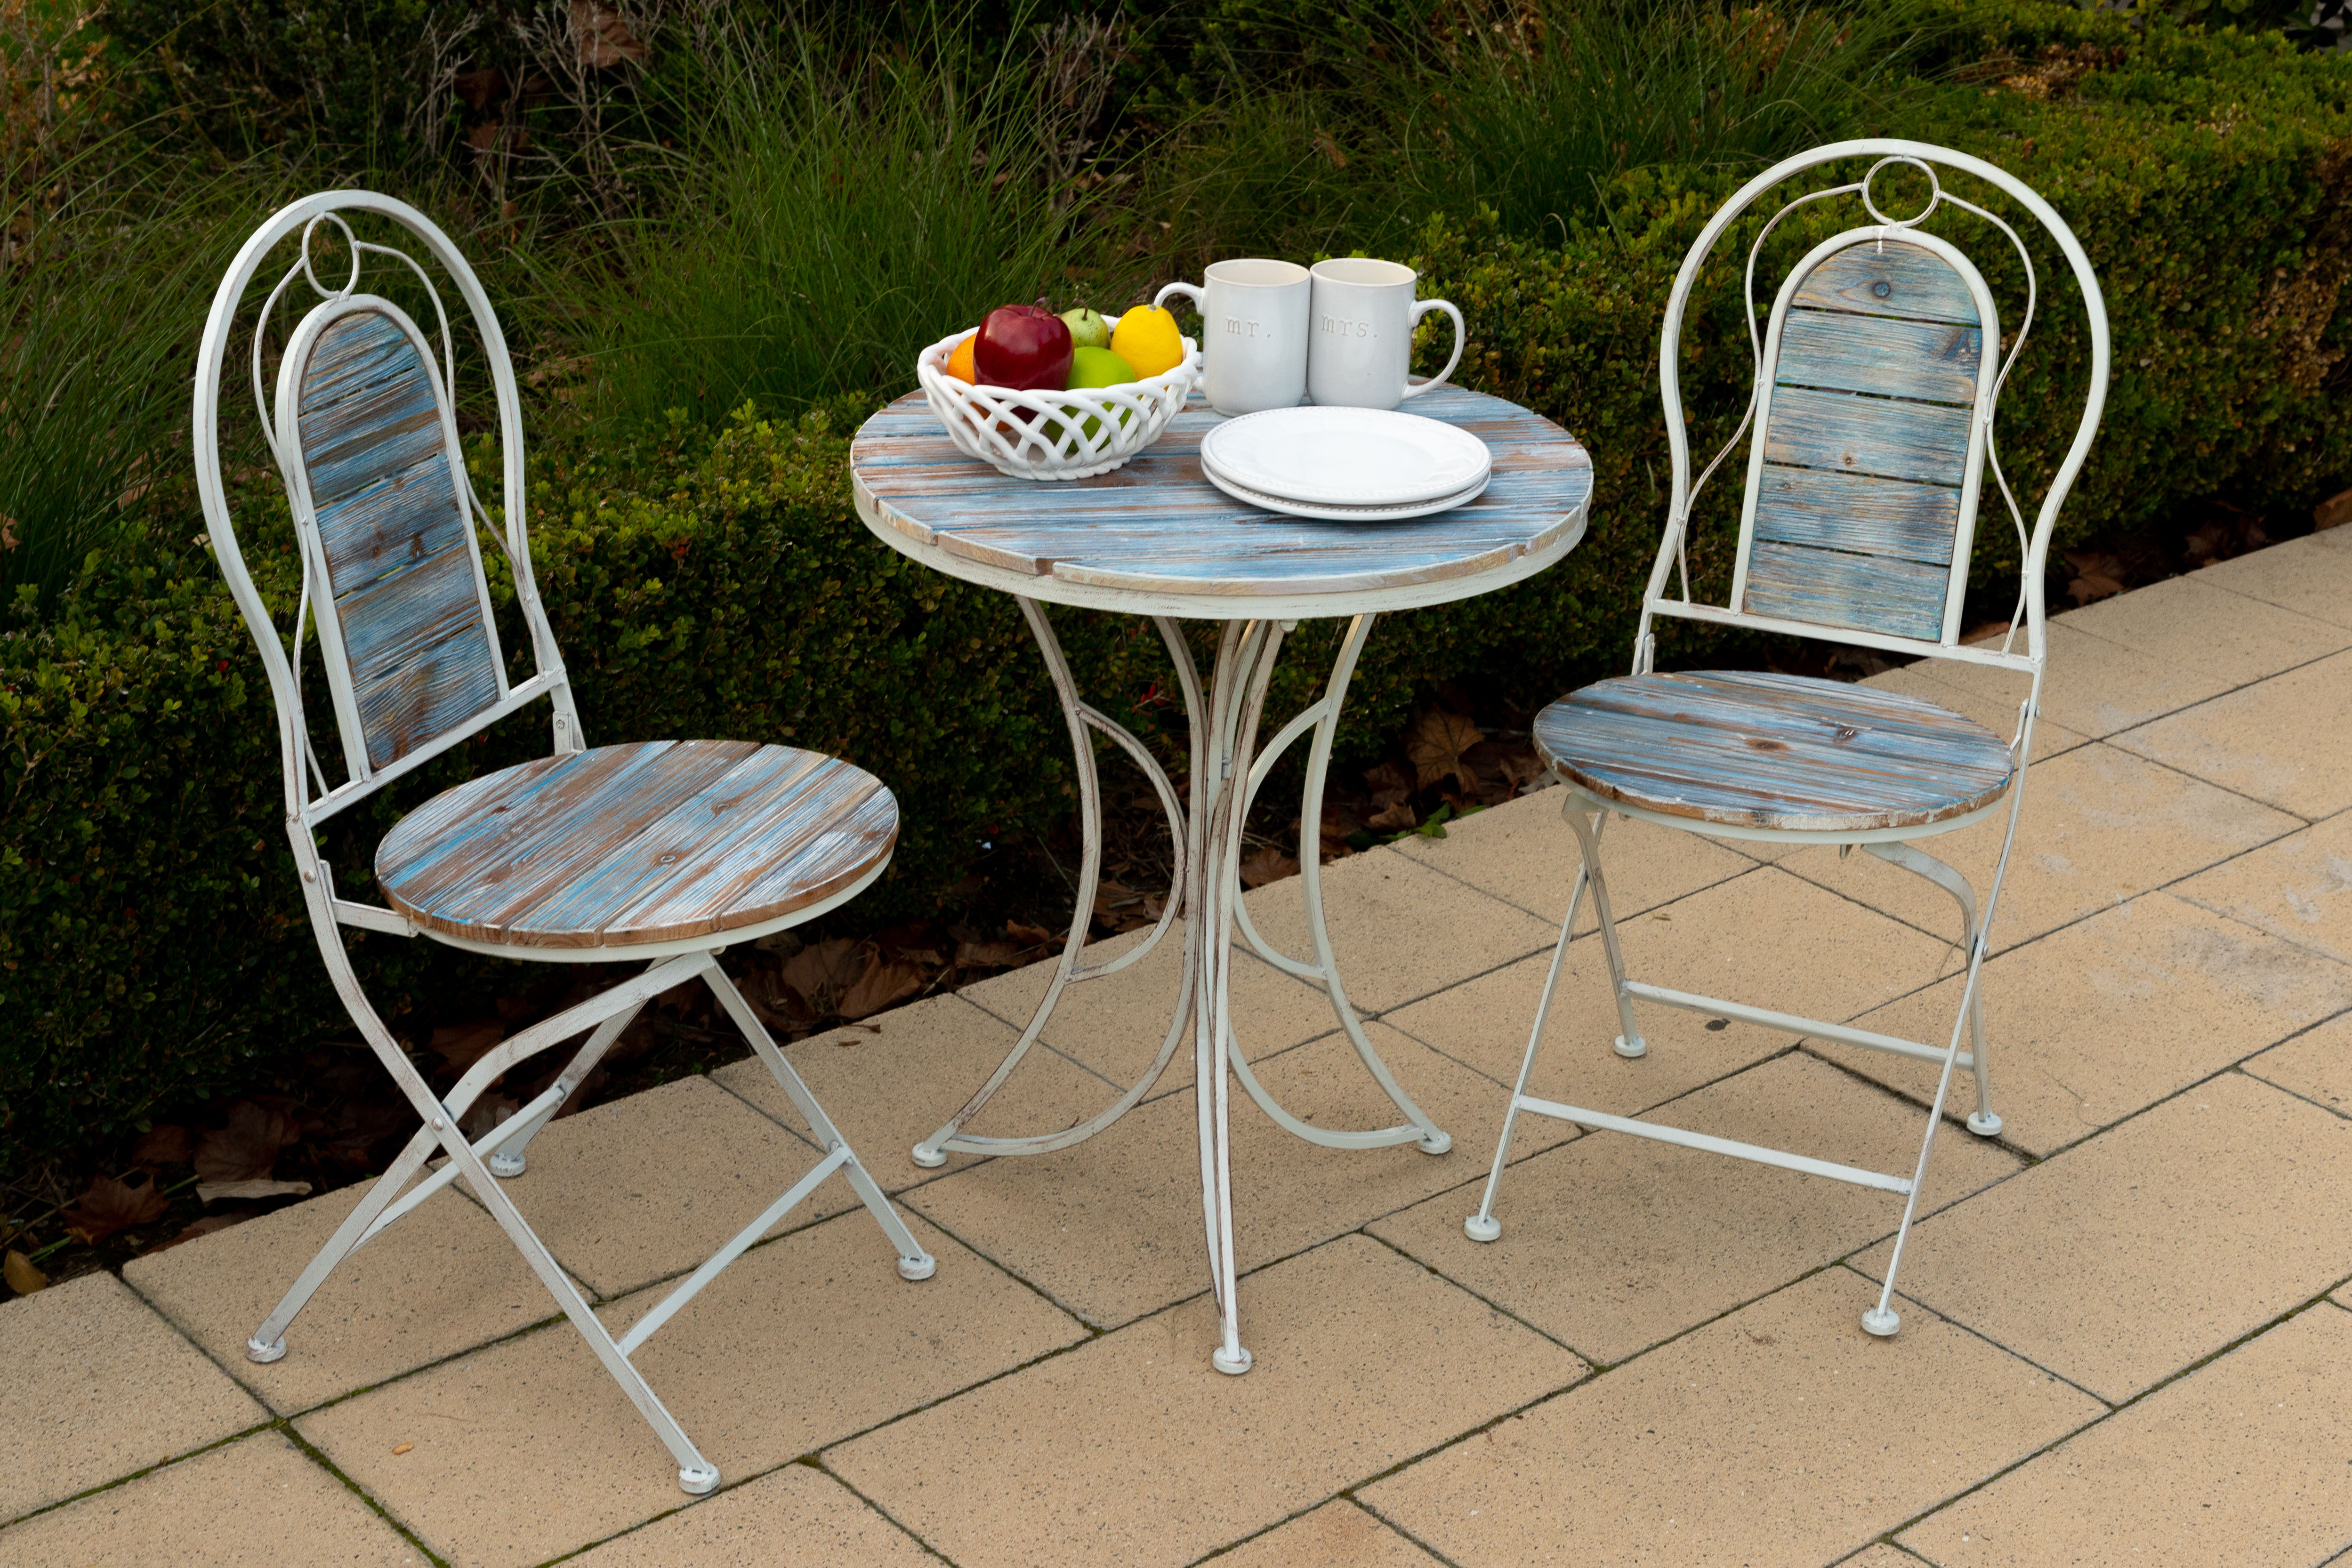 Alpine Metal Wood Patio Garden Furniture 3 Piece Bistro Set 1 Table And 2 Chairs 28 Inch Tall